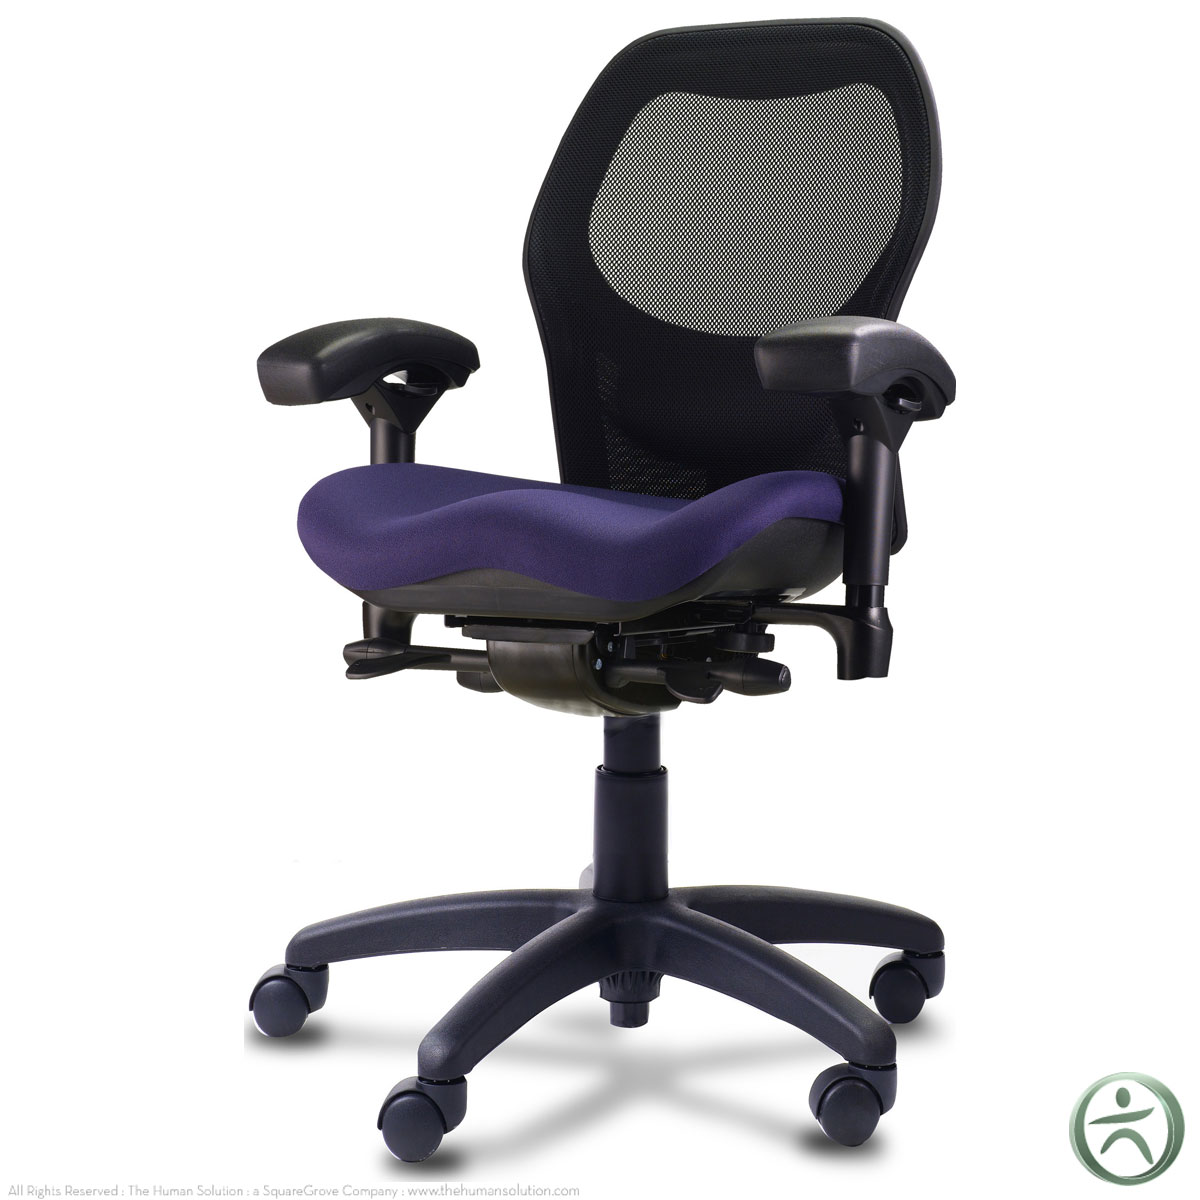 Ergonomic Mesh Chair Bodybilt 2600 Mesh Back Ergonomic Chair Shop Bodybilt Chairs